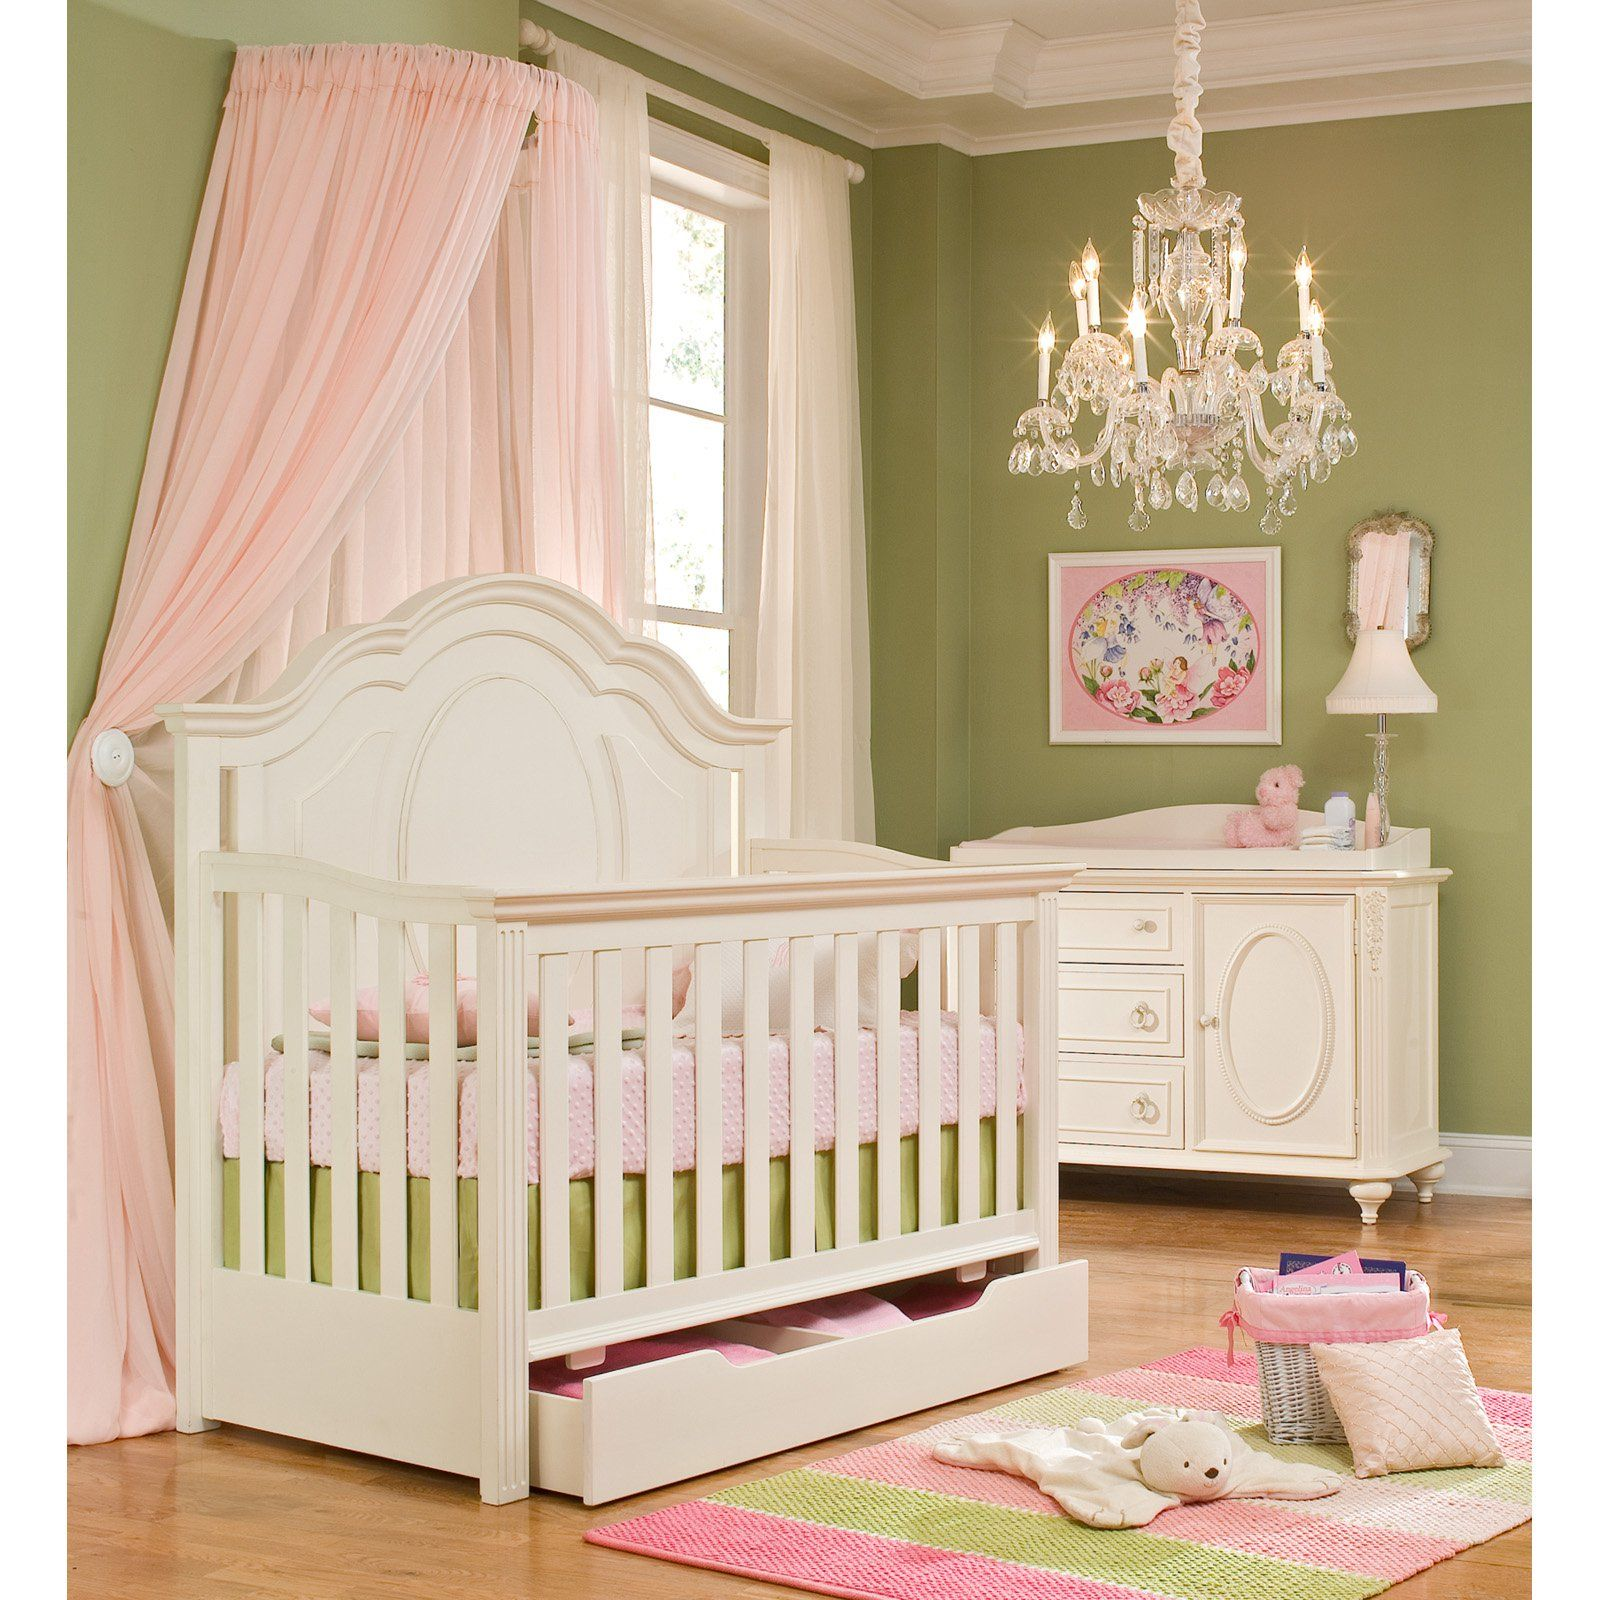 Legacy Classics Enchantment 4 in 1 Convertible Crib Collection